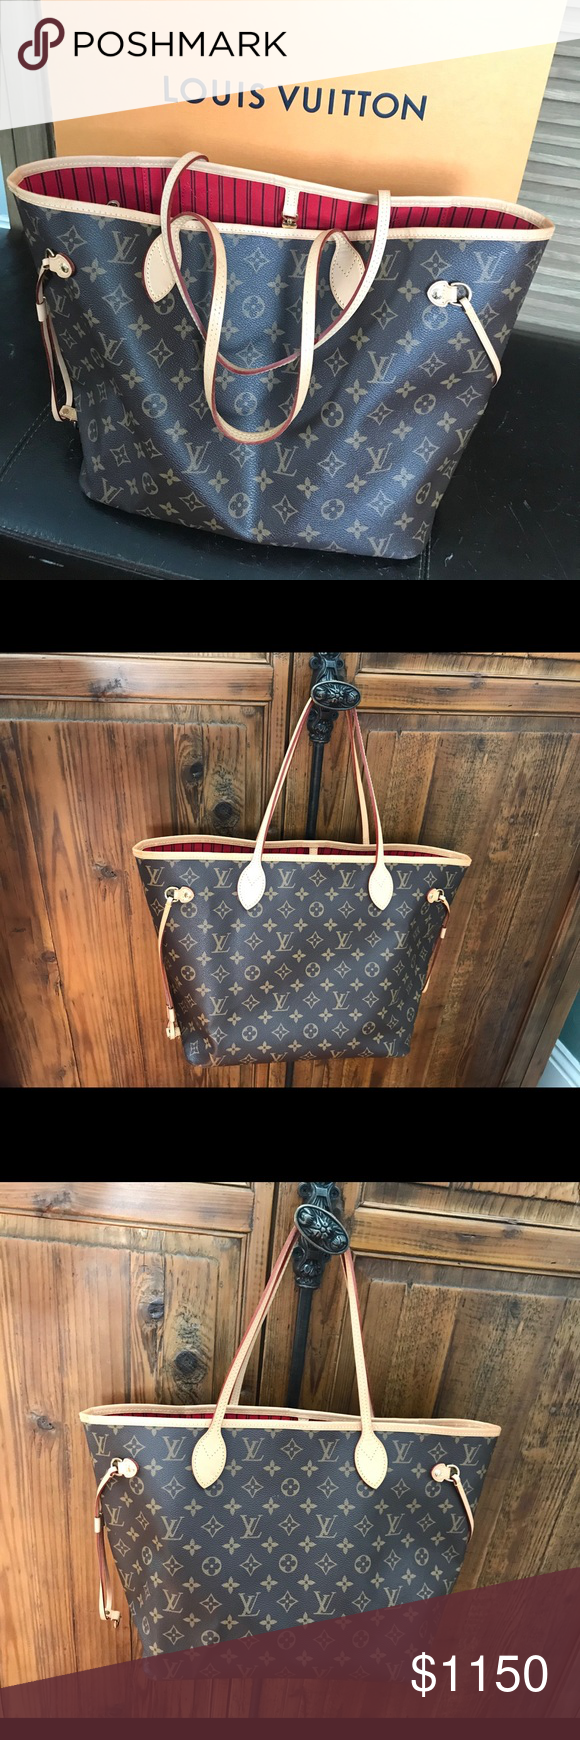 bba83350d Louis Vuitton Neverfull MM Monogram Tote Bag The most wanted classic monogram  LV Neverfull with the